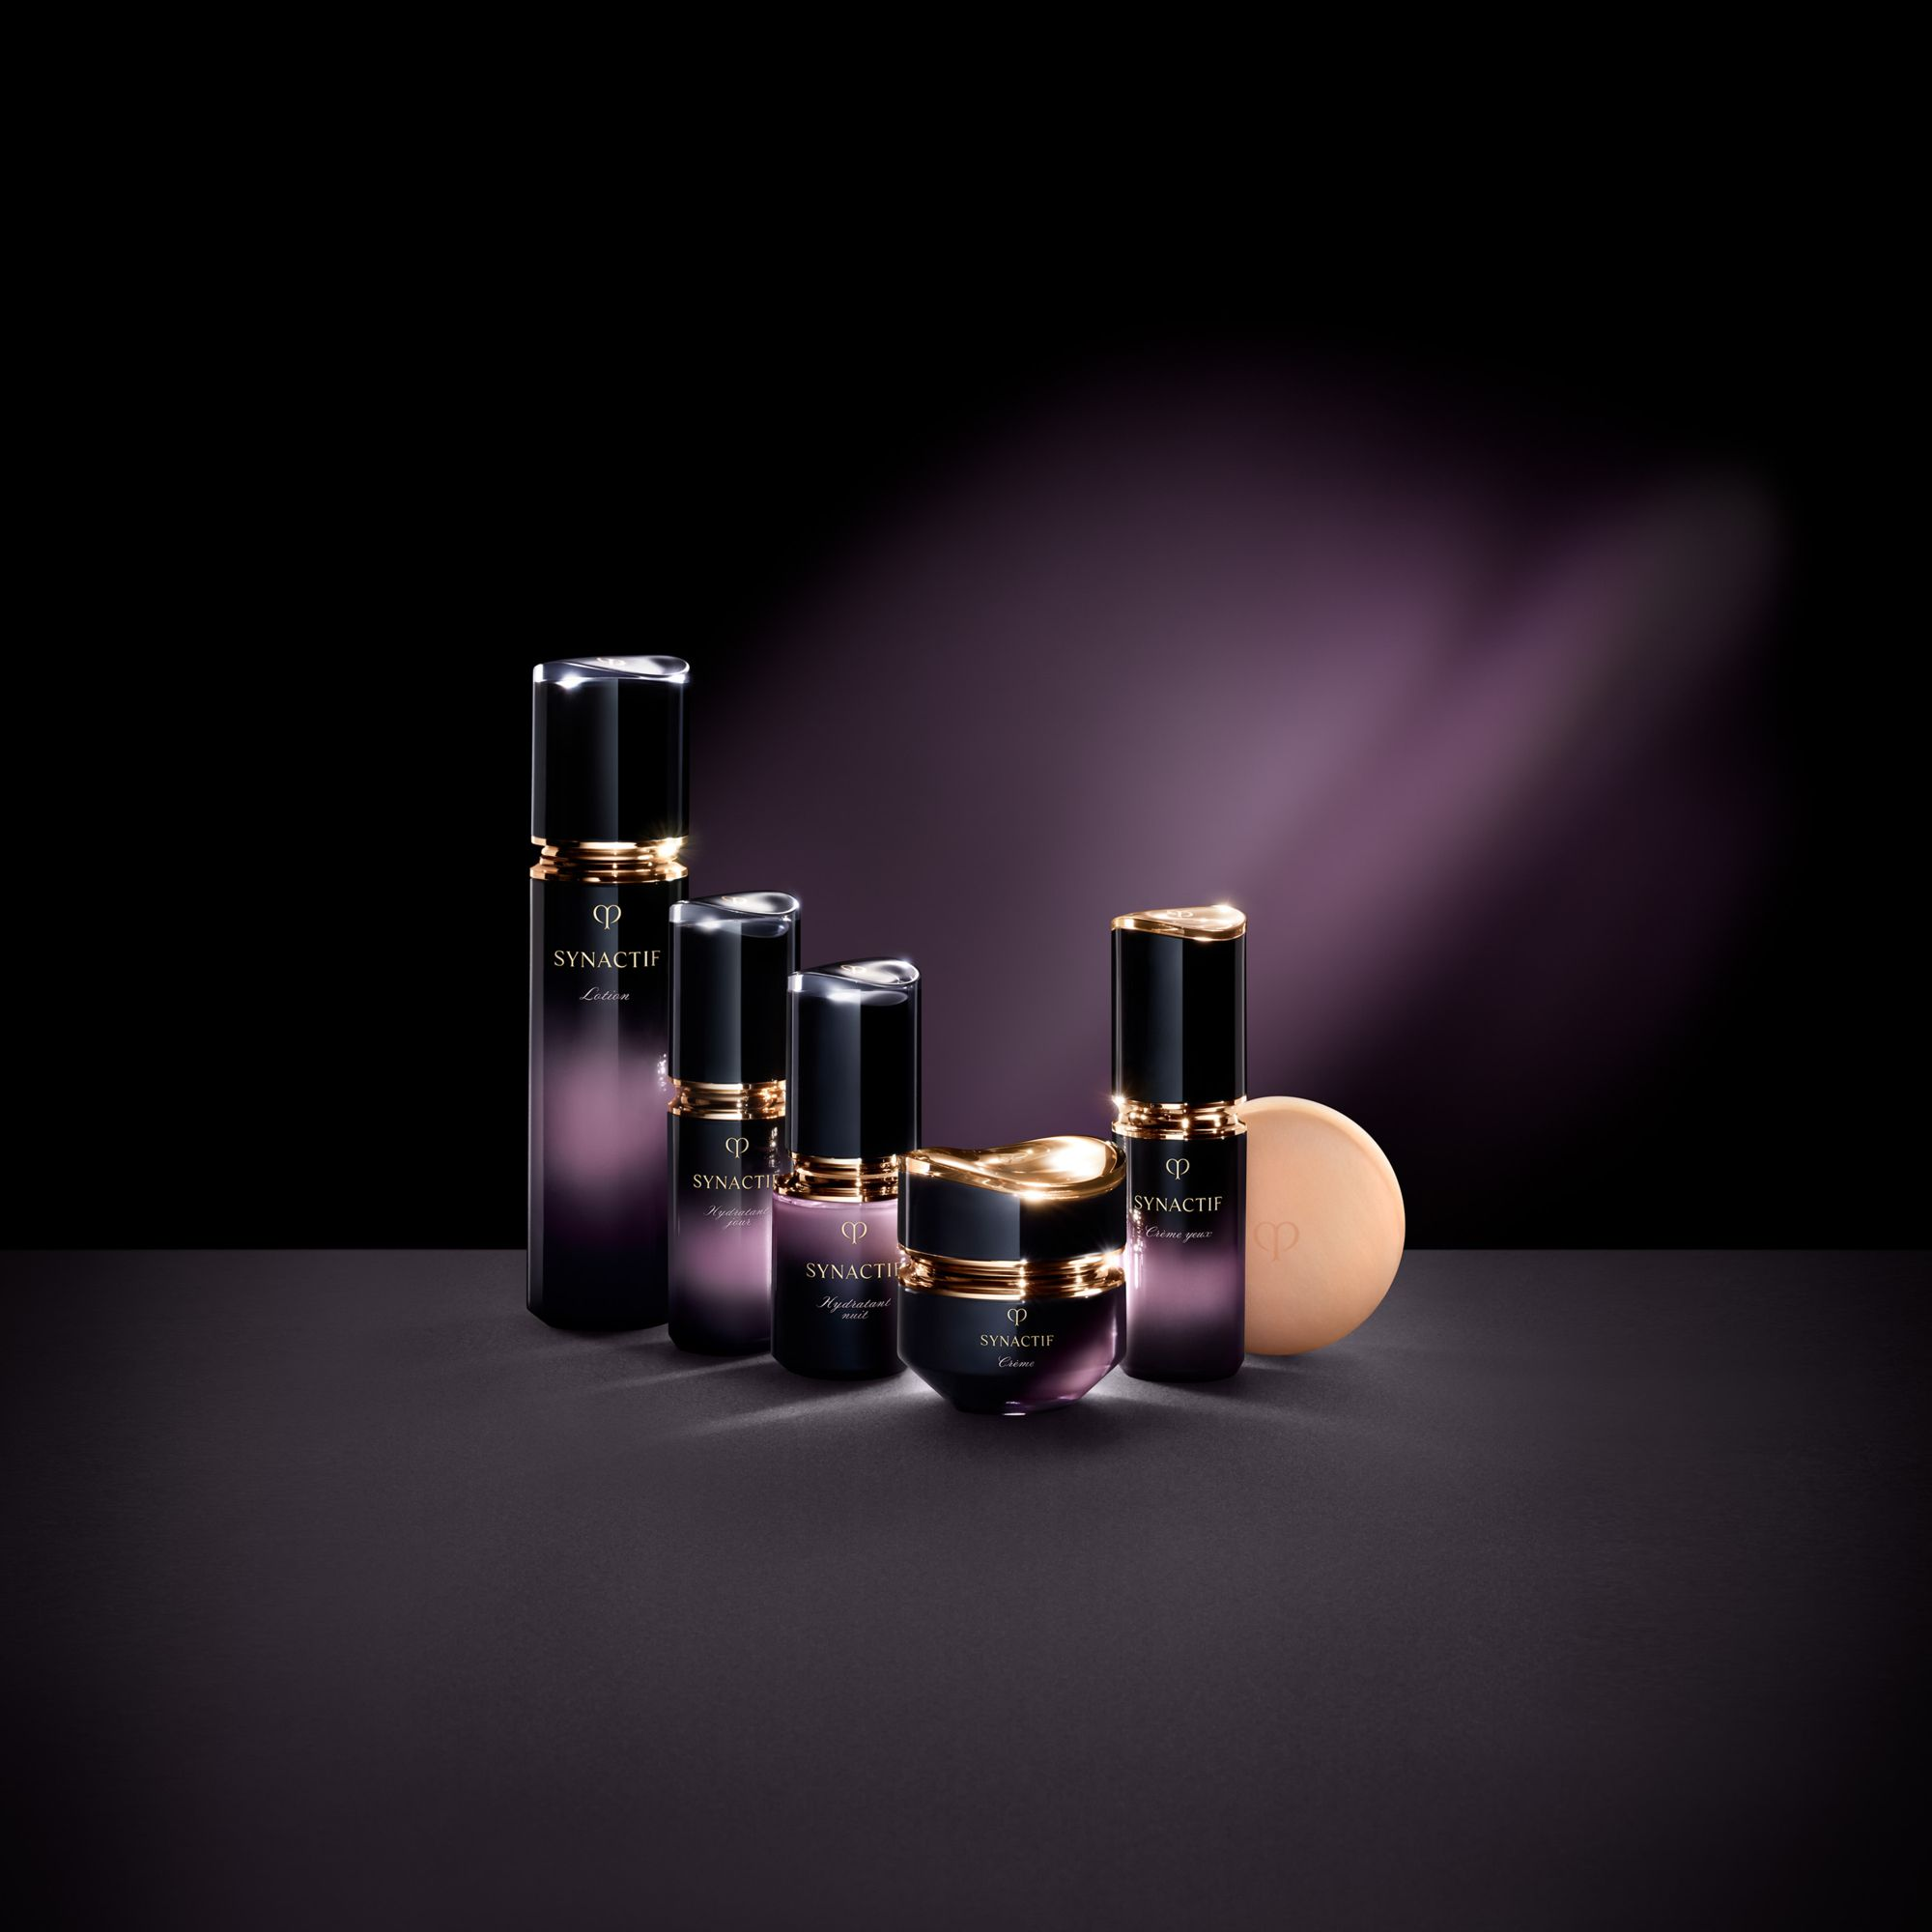 6 Synergistic Steps To Smooth, Sculpted Skin, According To Beauty Experts At Clé de Peau Beauté